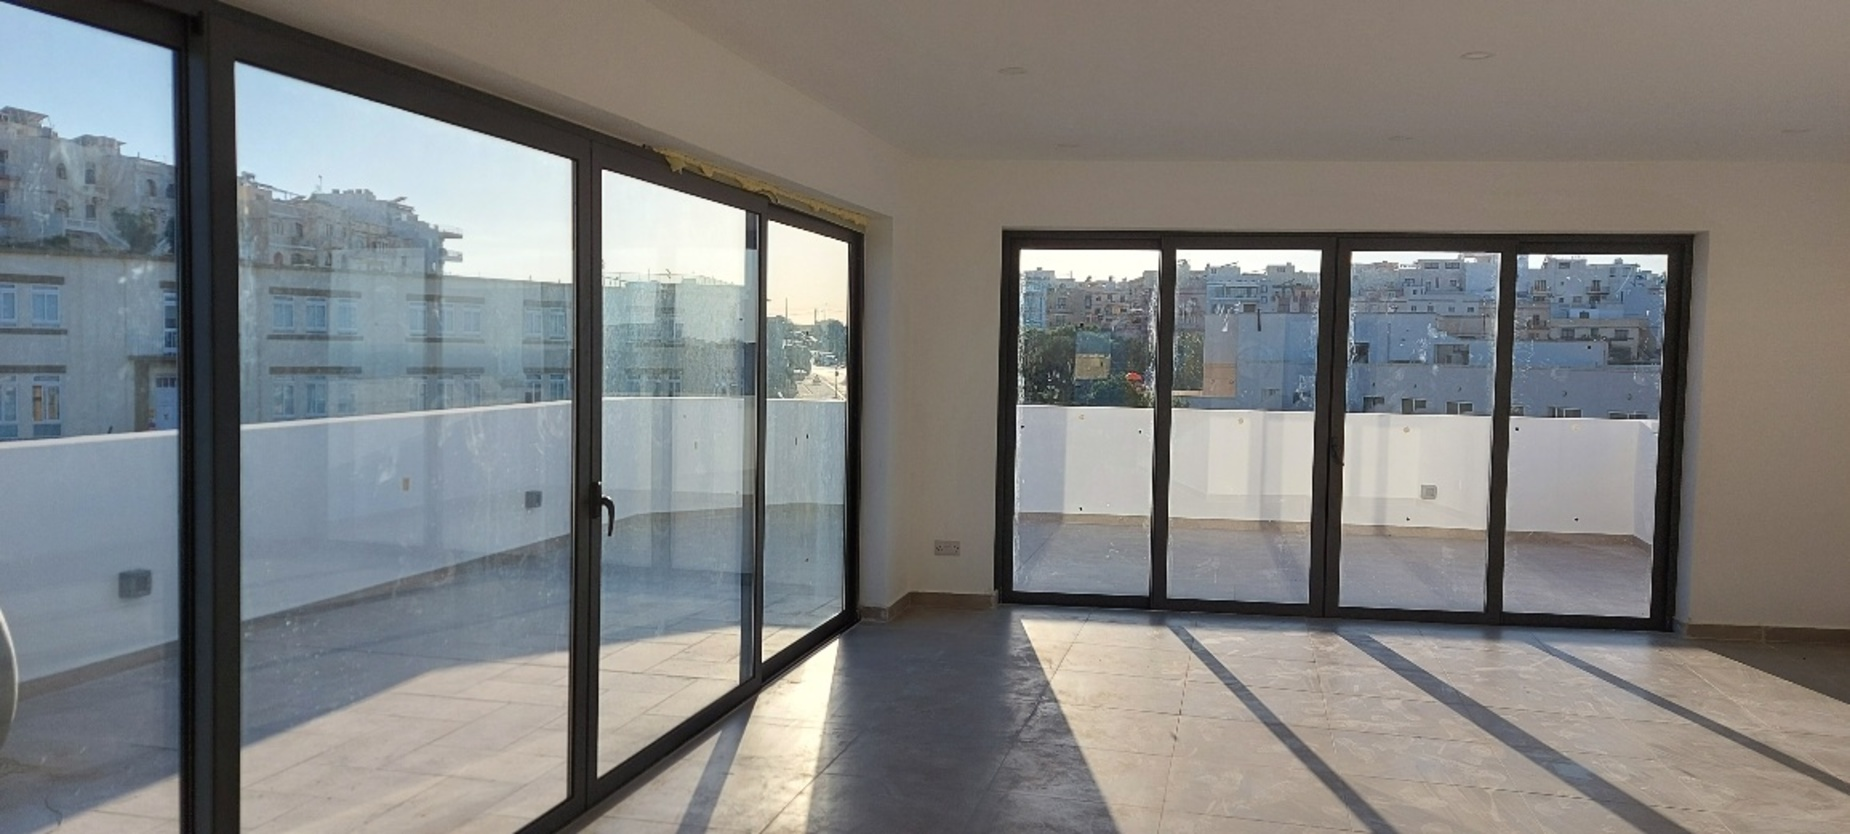 4 bed Penthouse For Sale in Mellieha, Mellieha - thumb 3